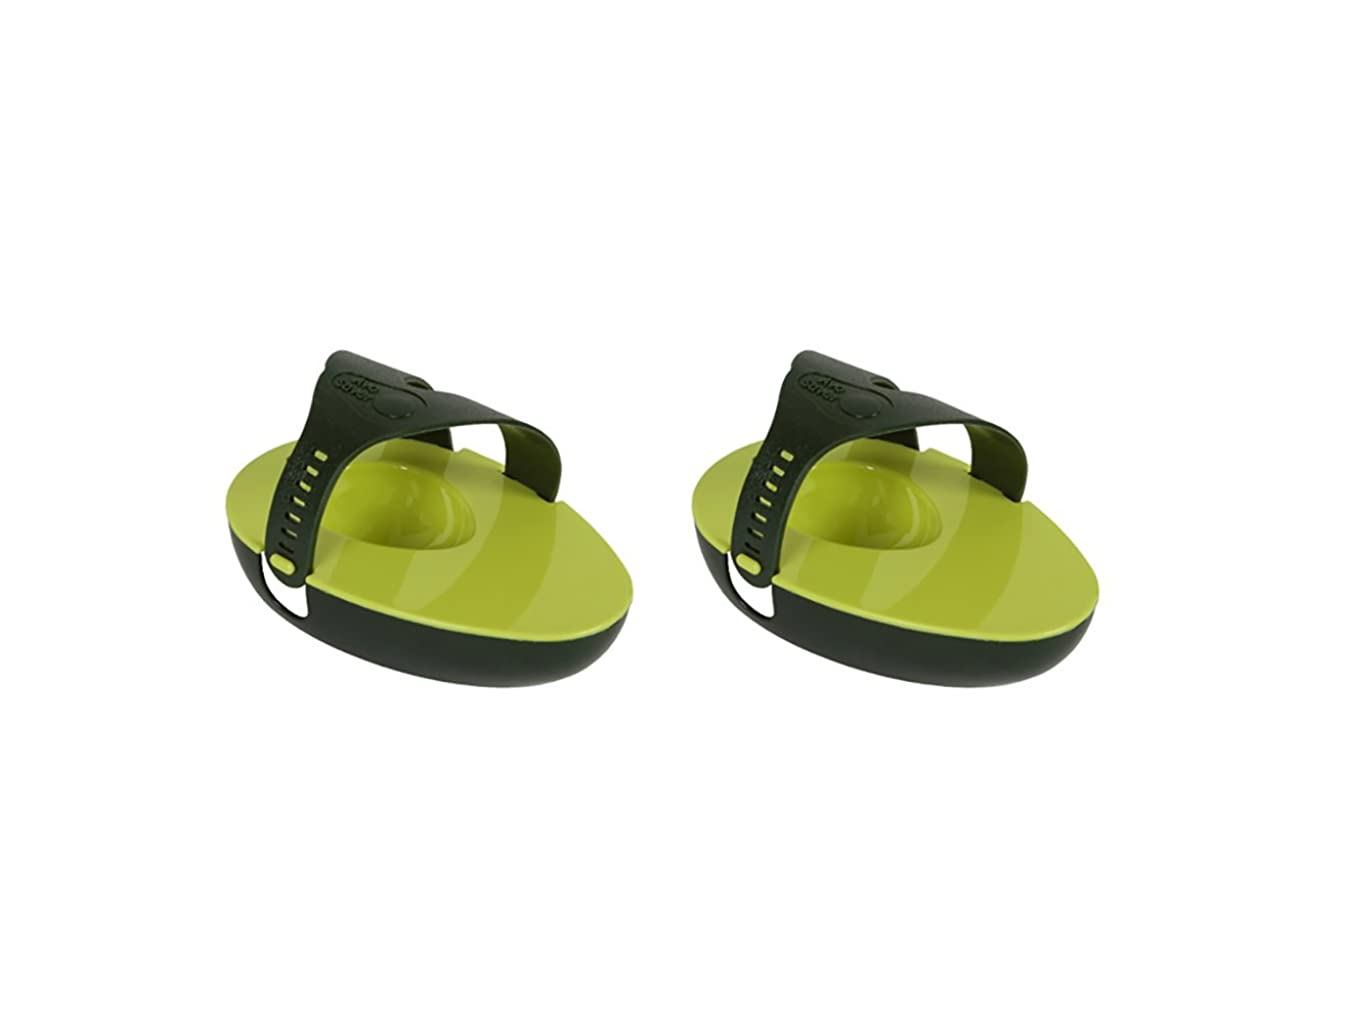 Evriholder Avo Saver, Avocado Holder with Rubber Strap to Secure Your Food & Keep it Fresh, Pack of 2